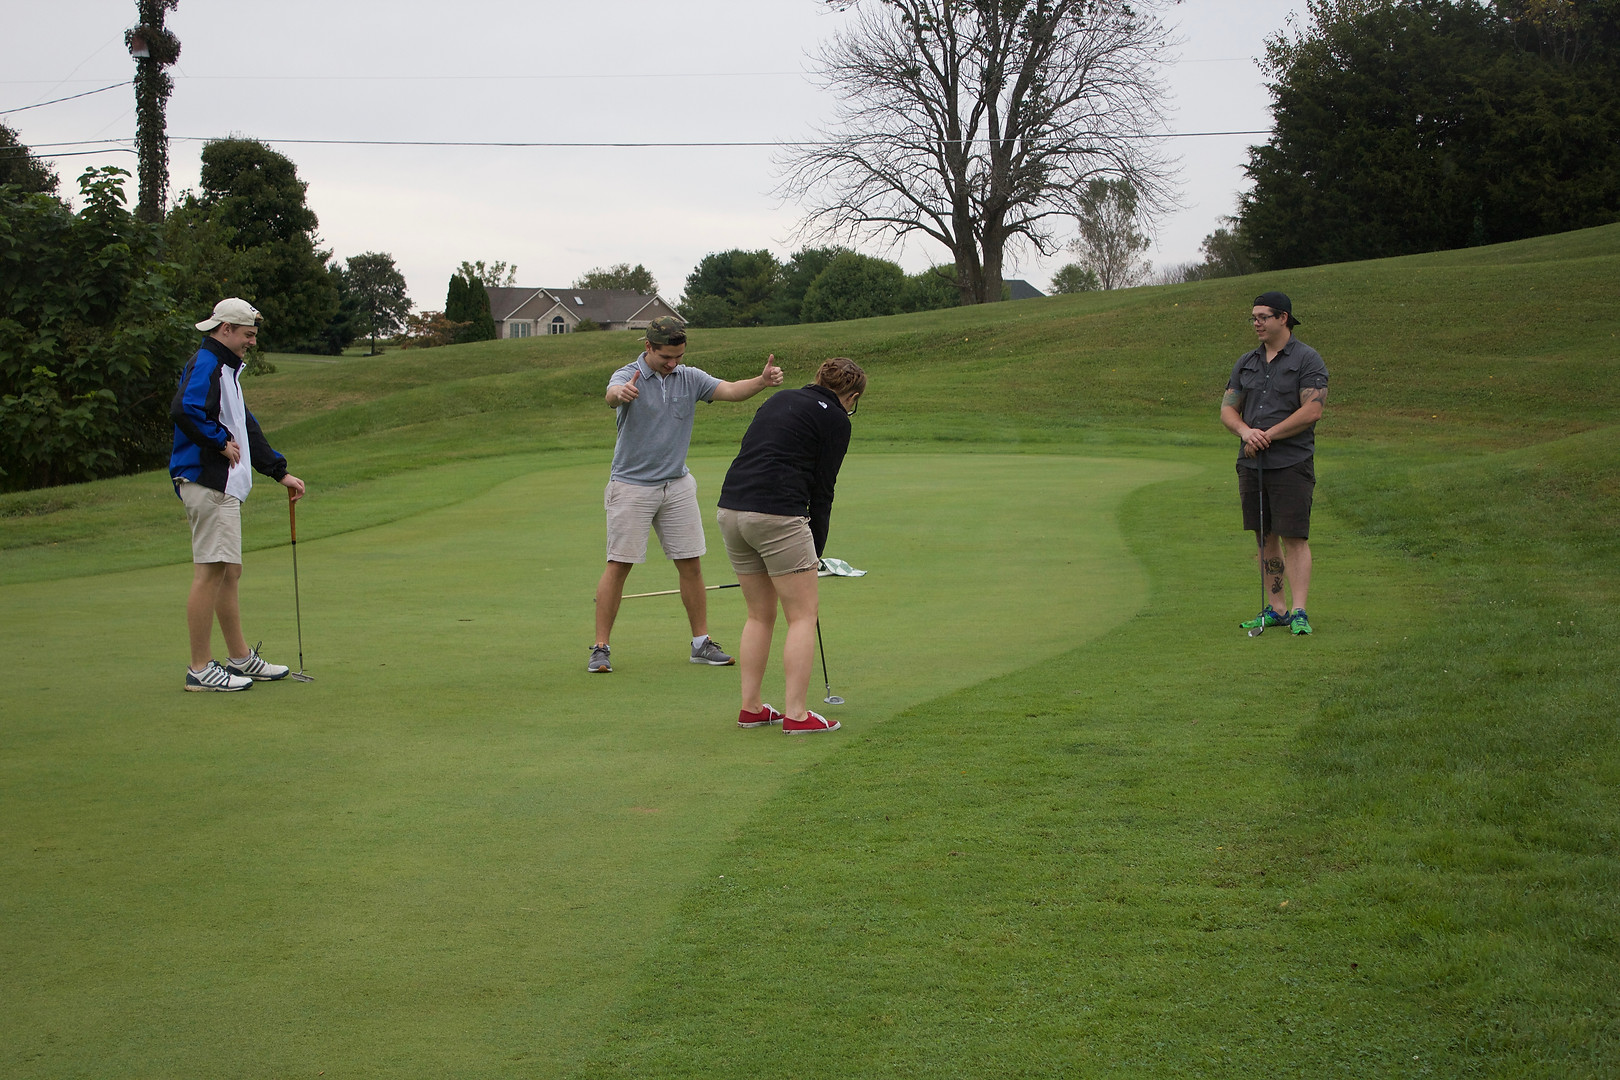 2nd Annual Carl Broughton Memorial Golf Outing